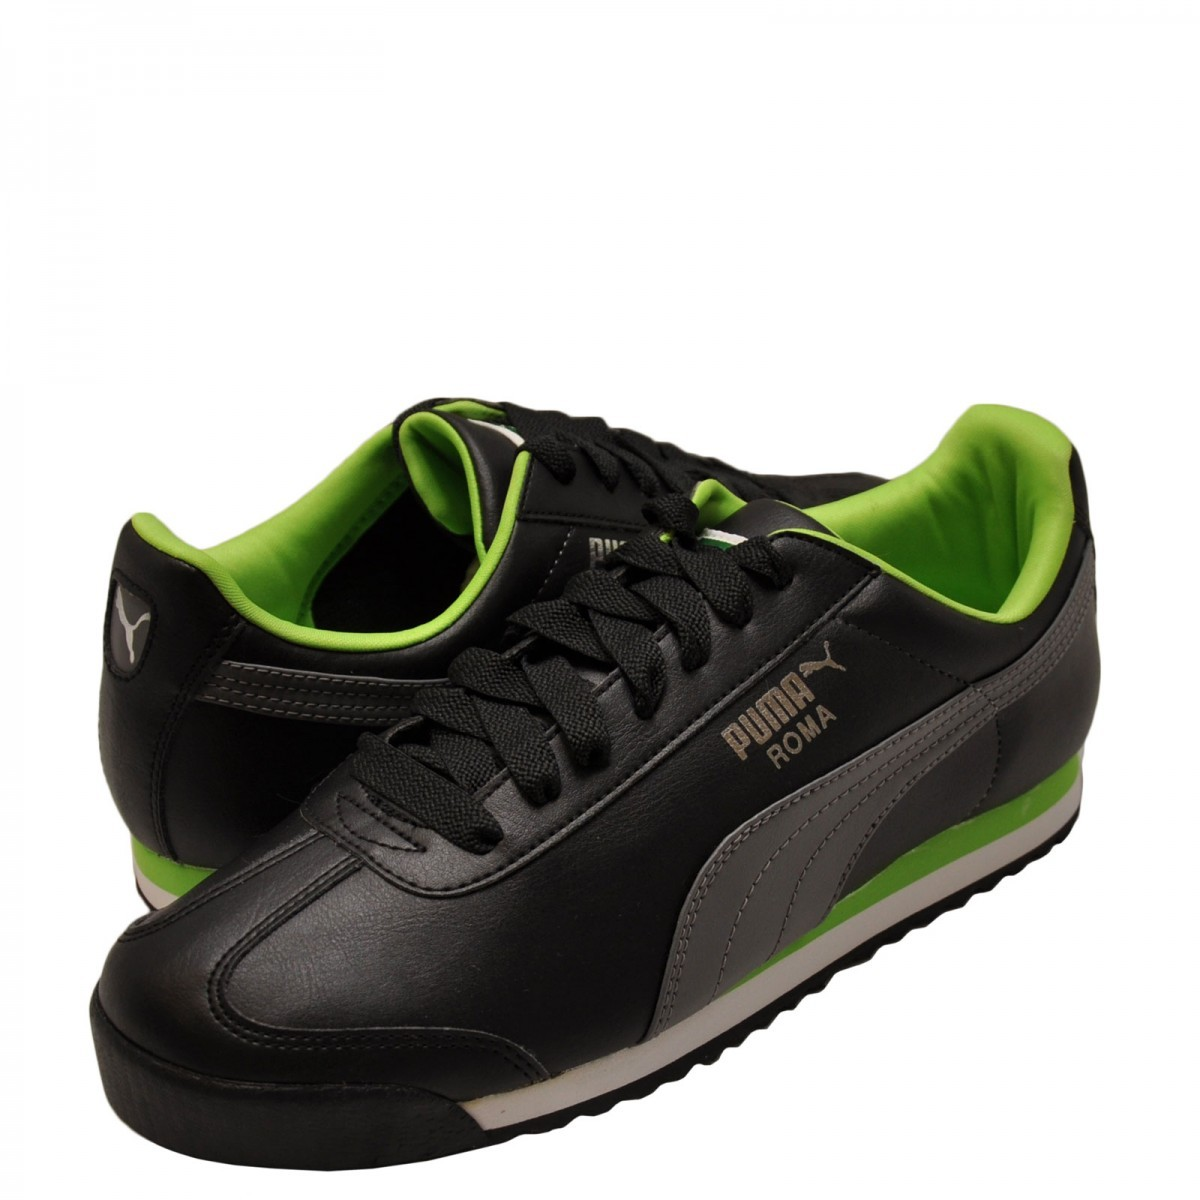 new puma roma shoes